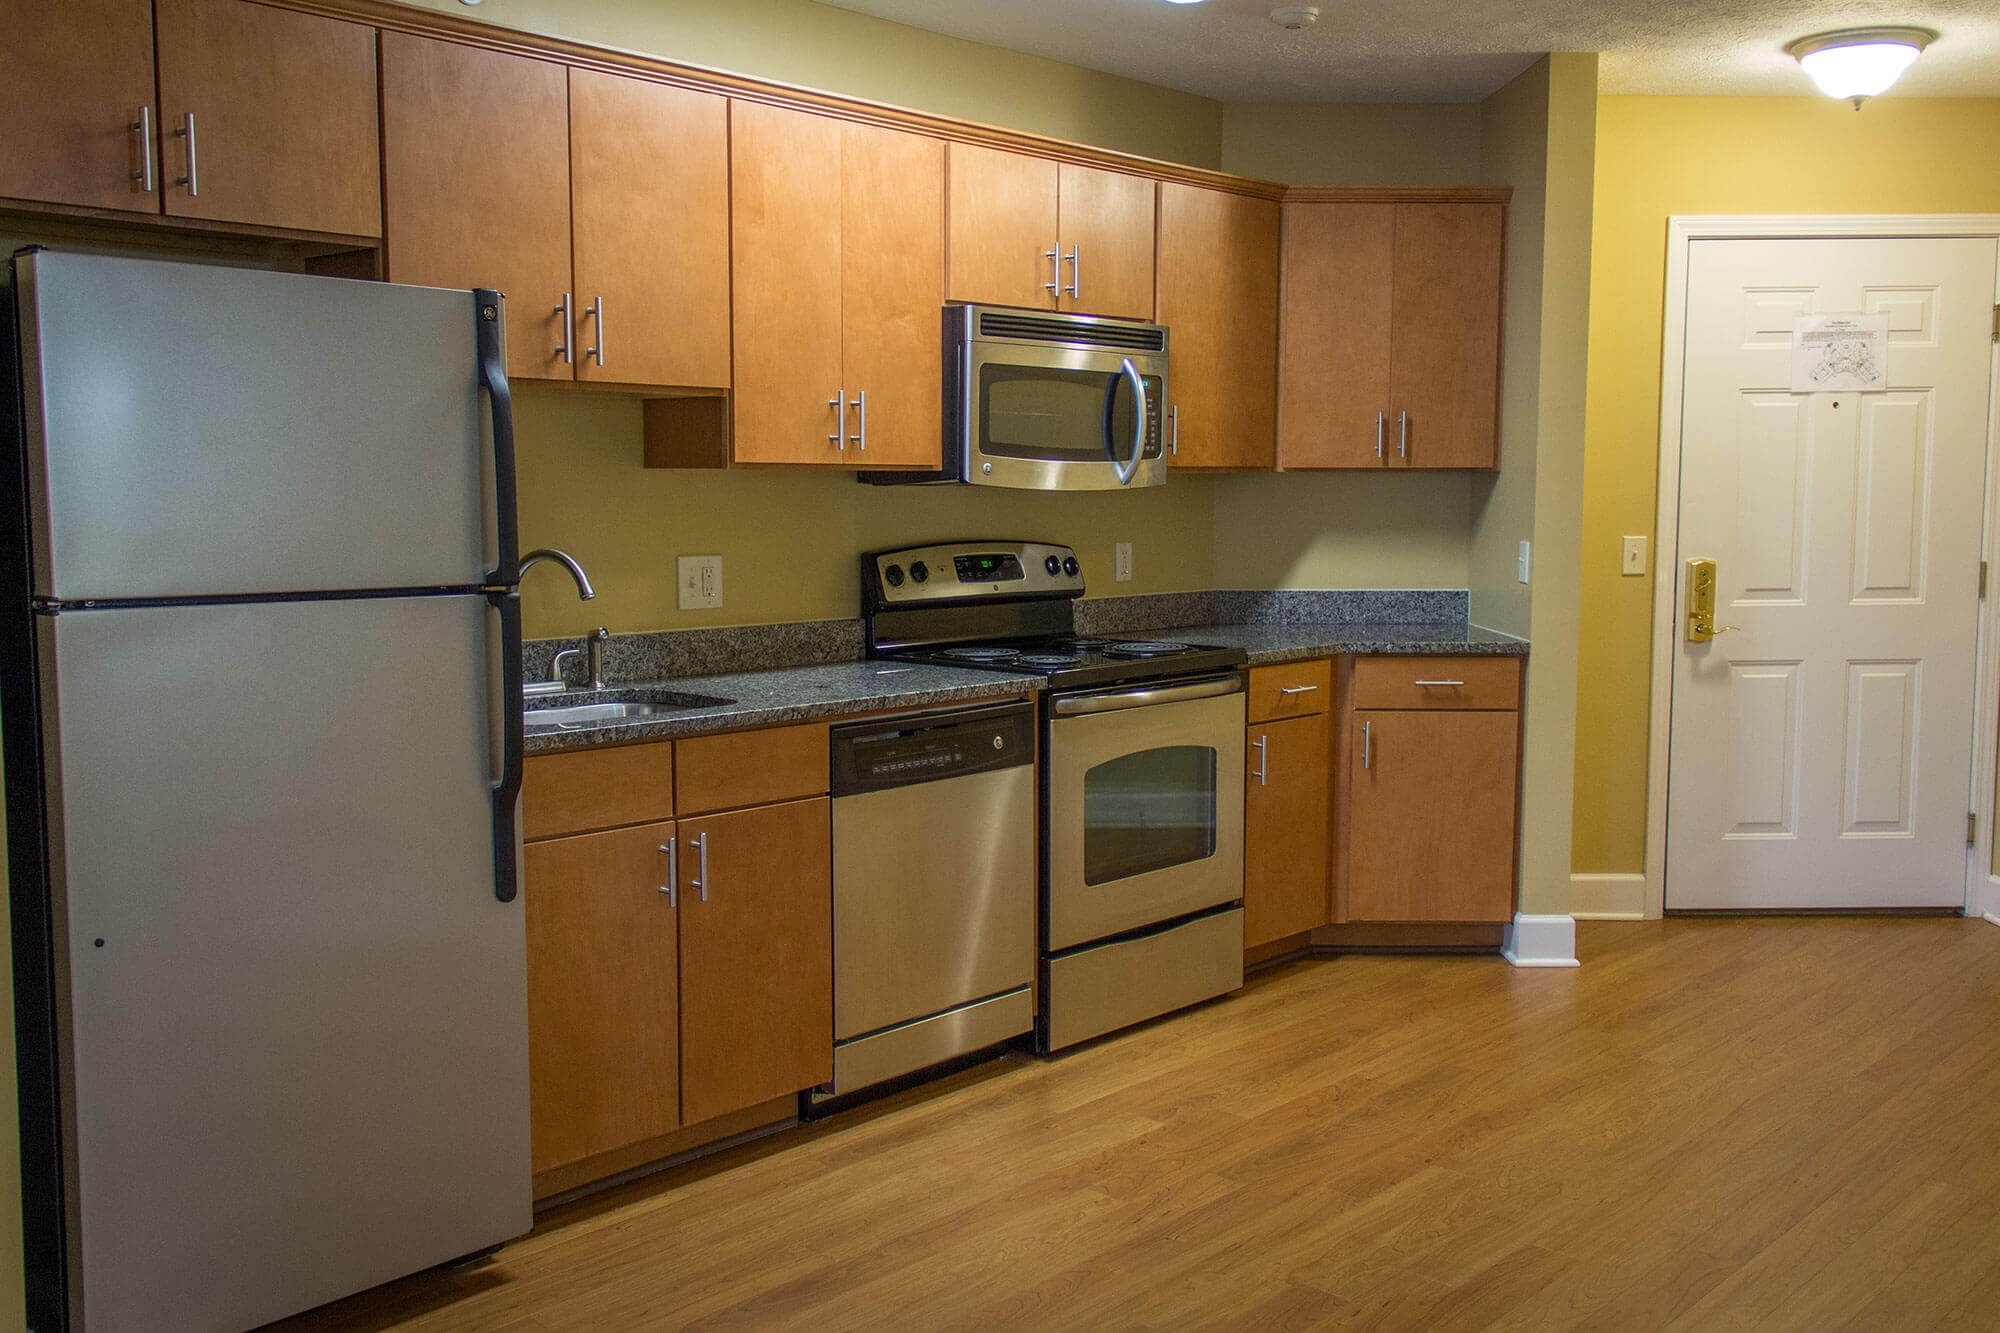 Apartments Near RIT Village East for Rochester Institute of Technology Students in Rochester, NY